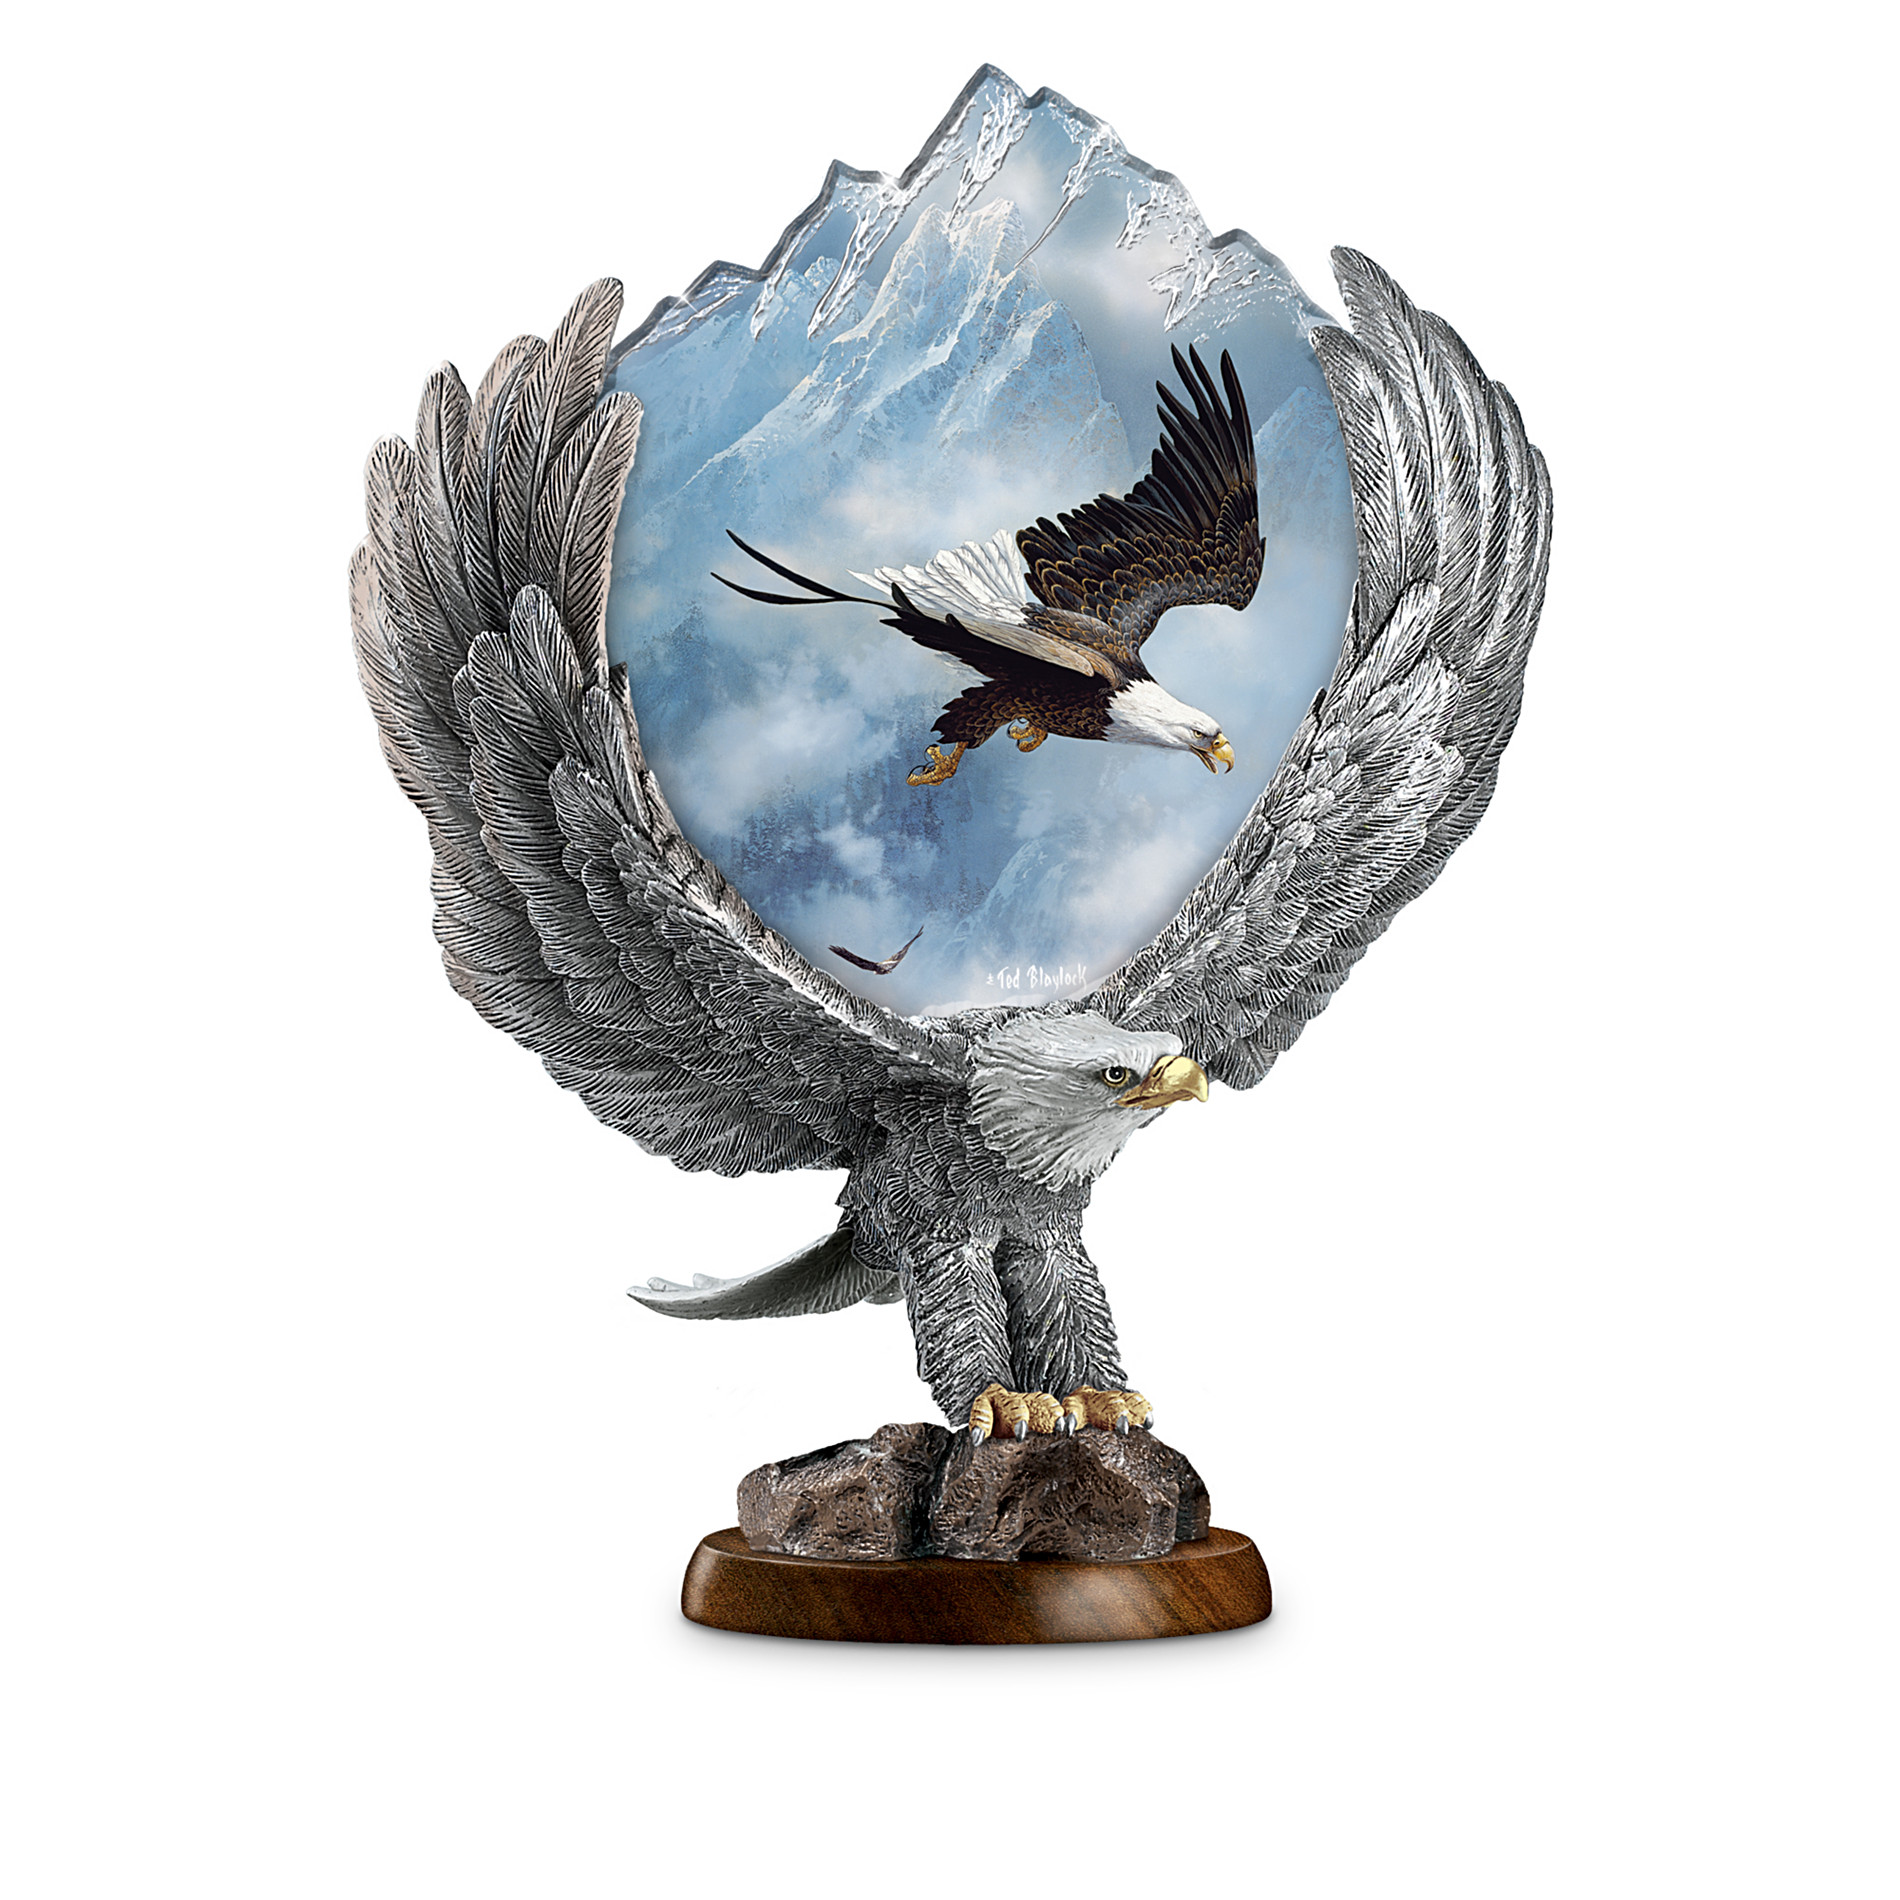 The Bradford Exchange Ted Blaylock's The Mountain Majesty Sculpture Collection at Sears.com